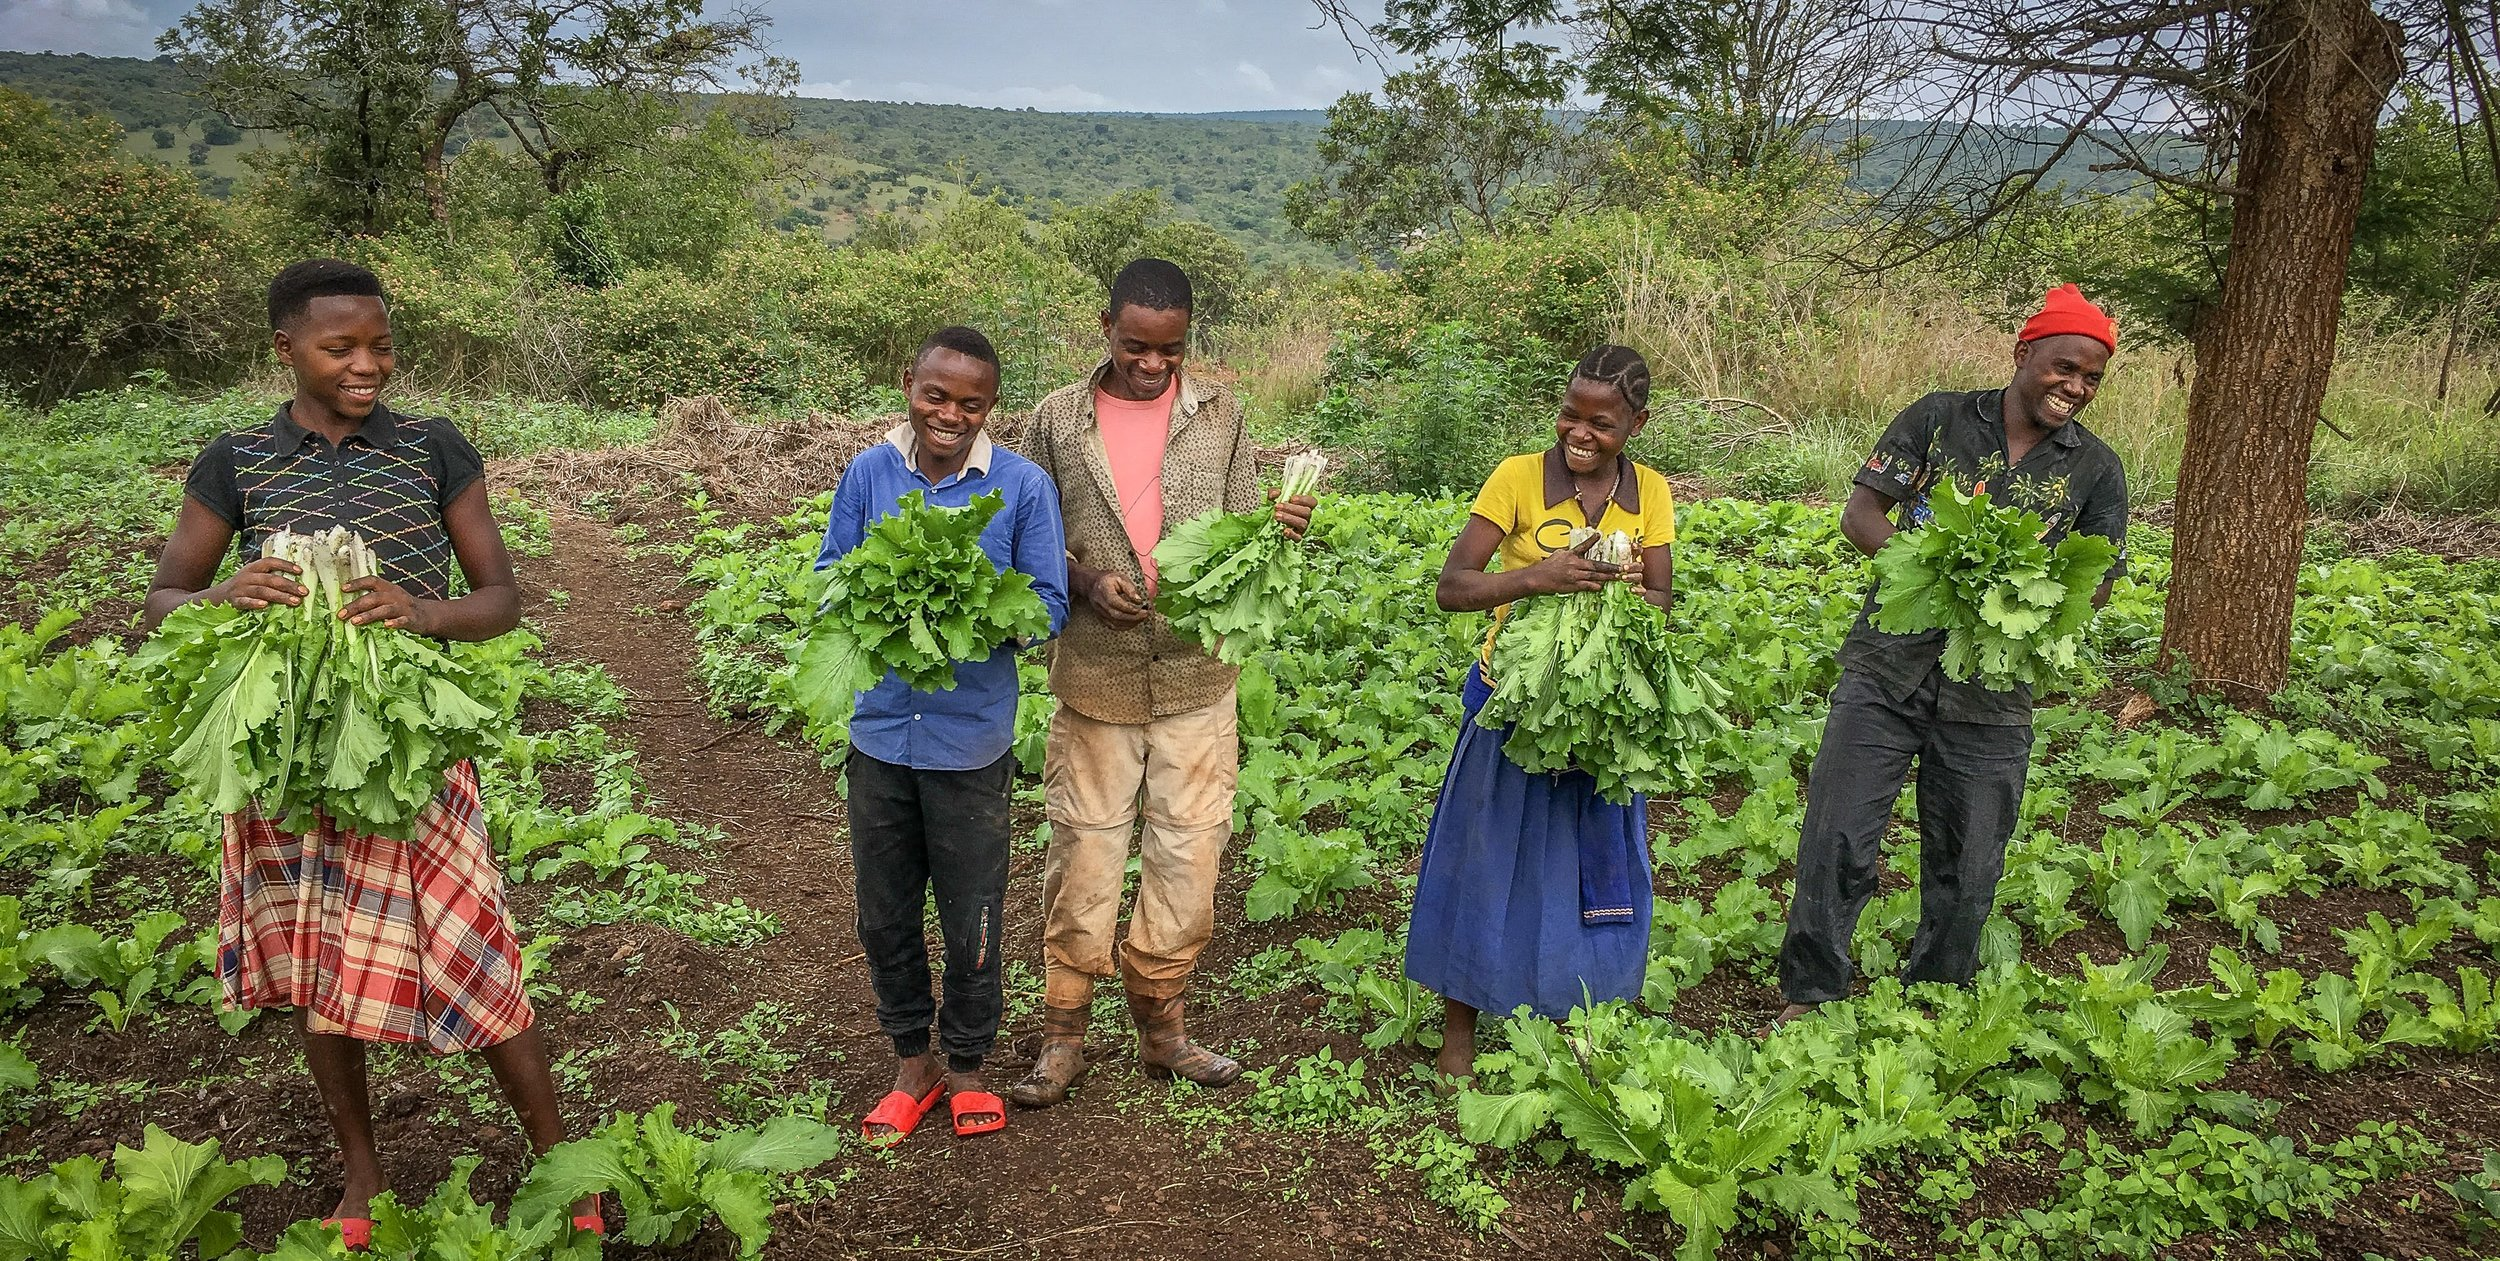 Happiness and smiles on the faces of our youth after they harvest some of the crops that are now growing abundantly due to having water on site from our well.